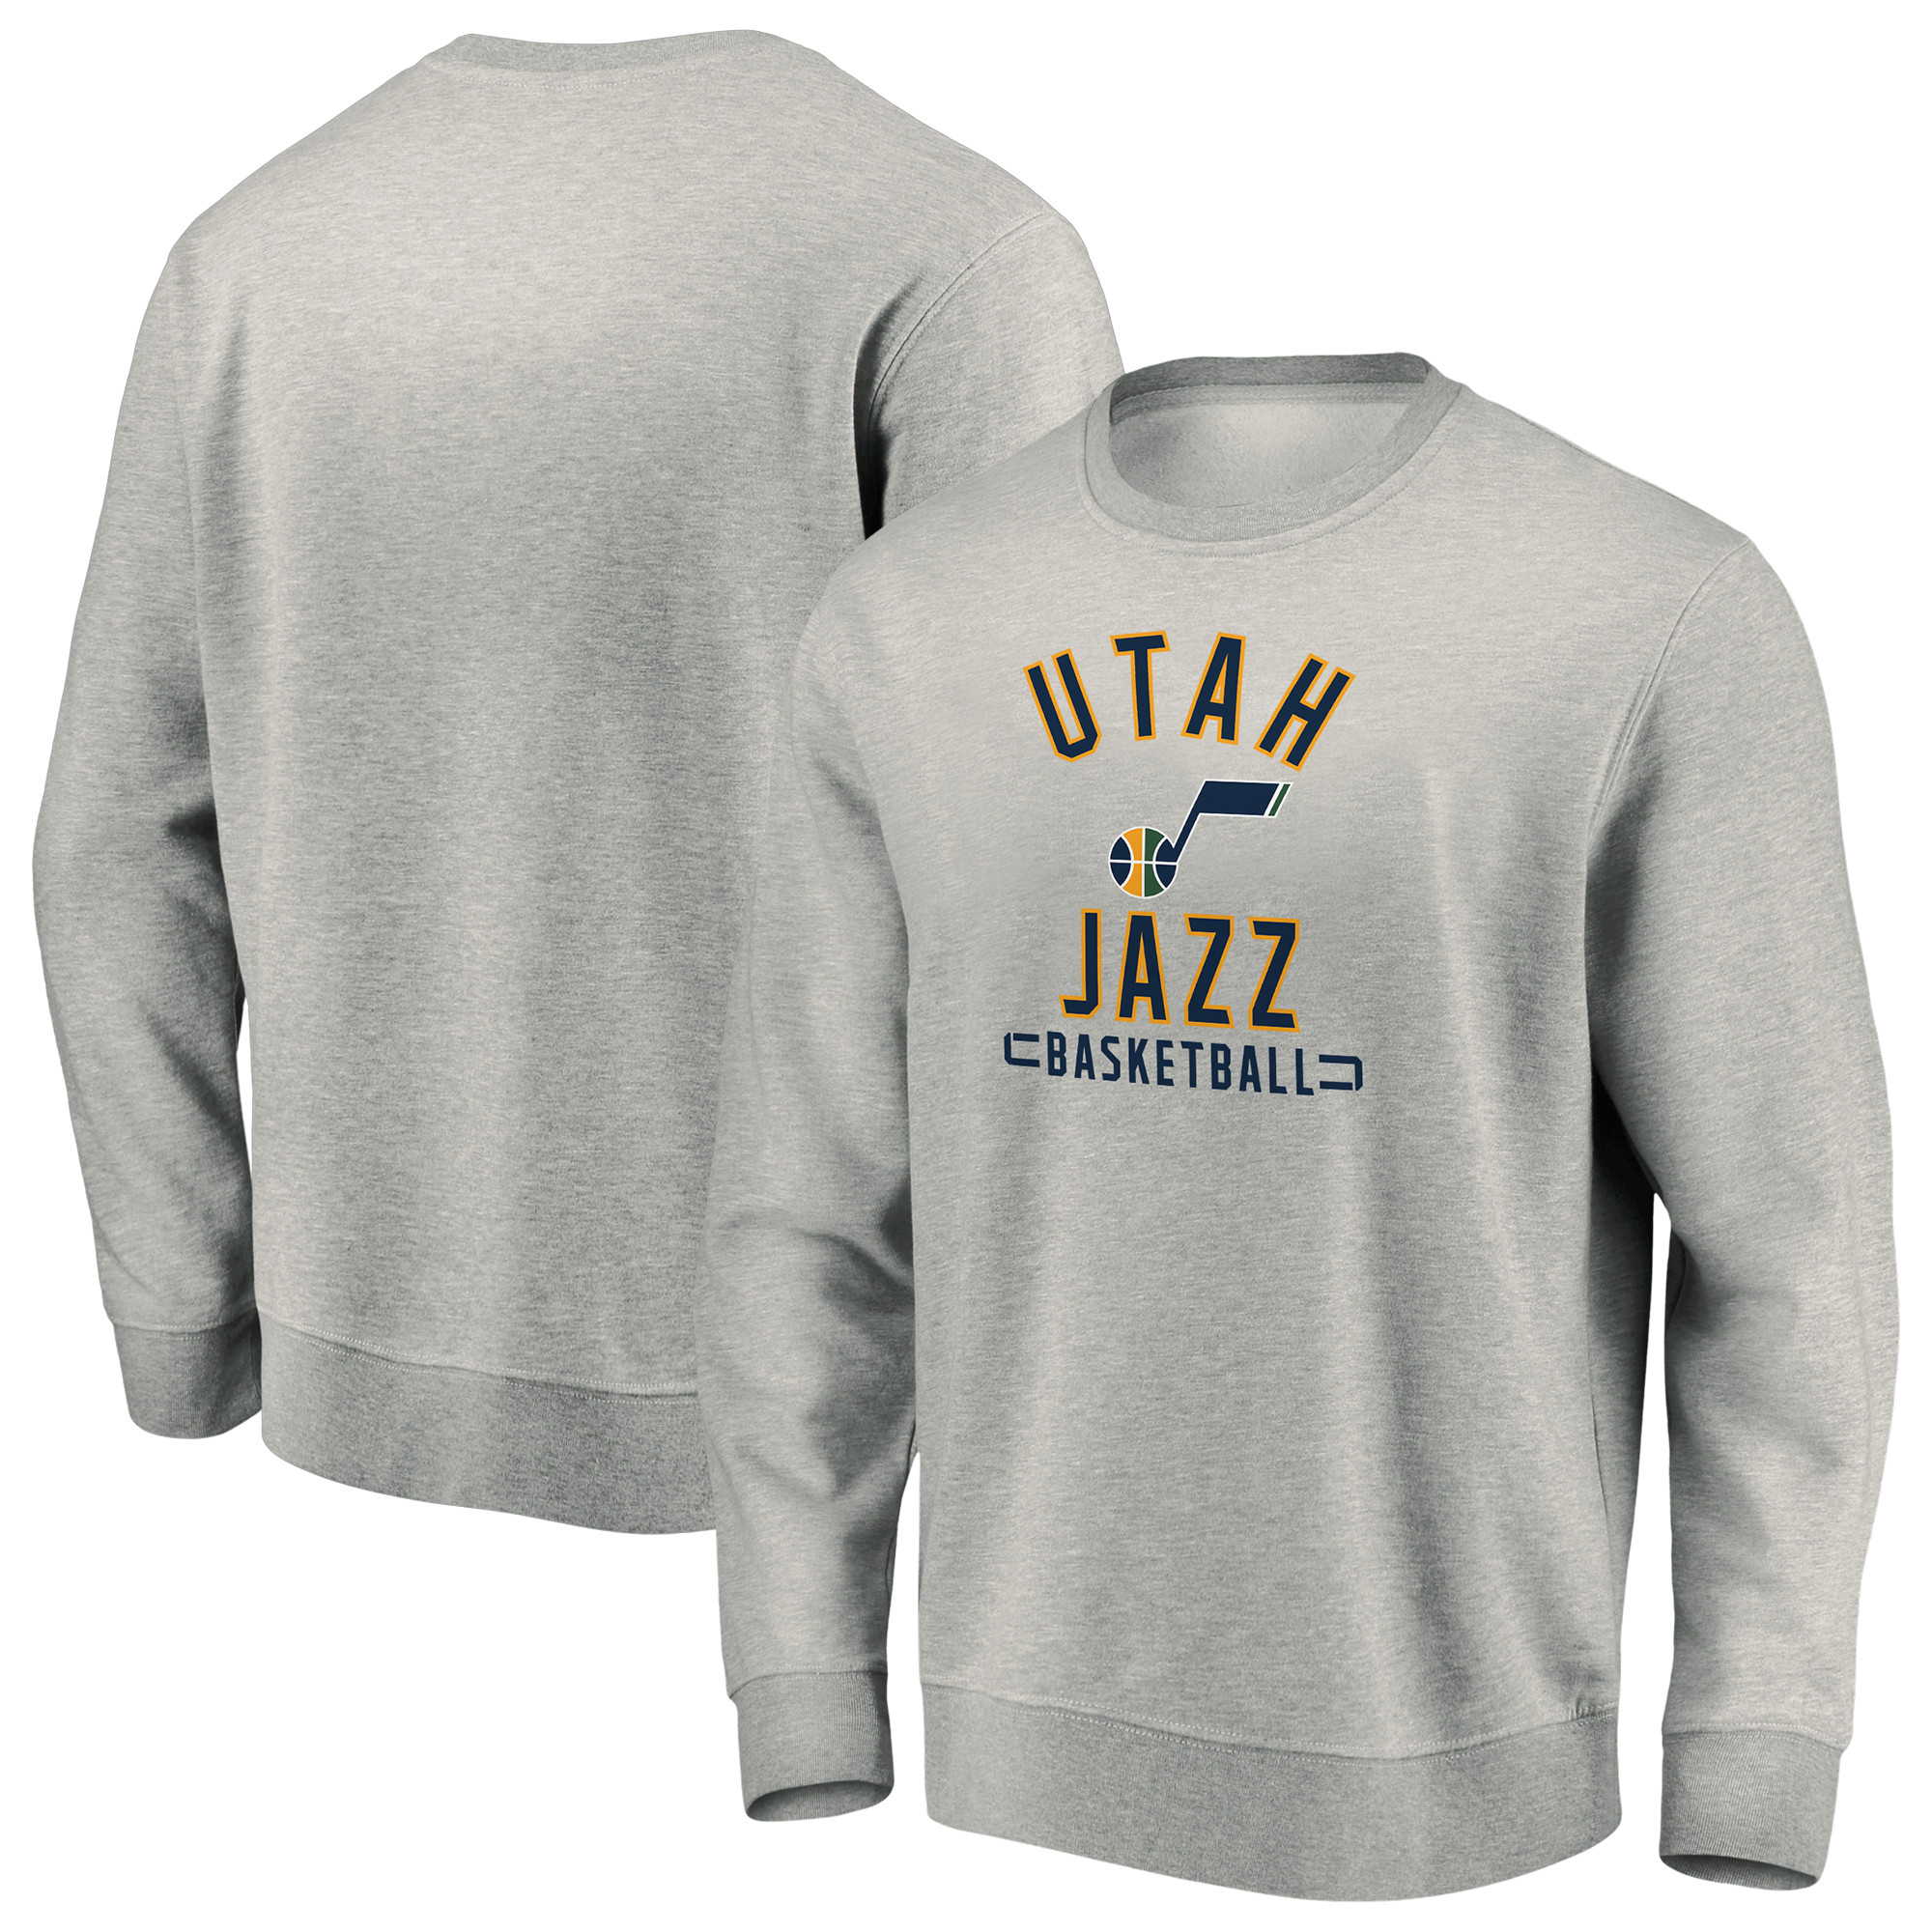 Utah Jazz Fanatics Branded Iconic Team Arc Stack Fleece Sweatshirt - Heathered Gray